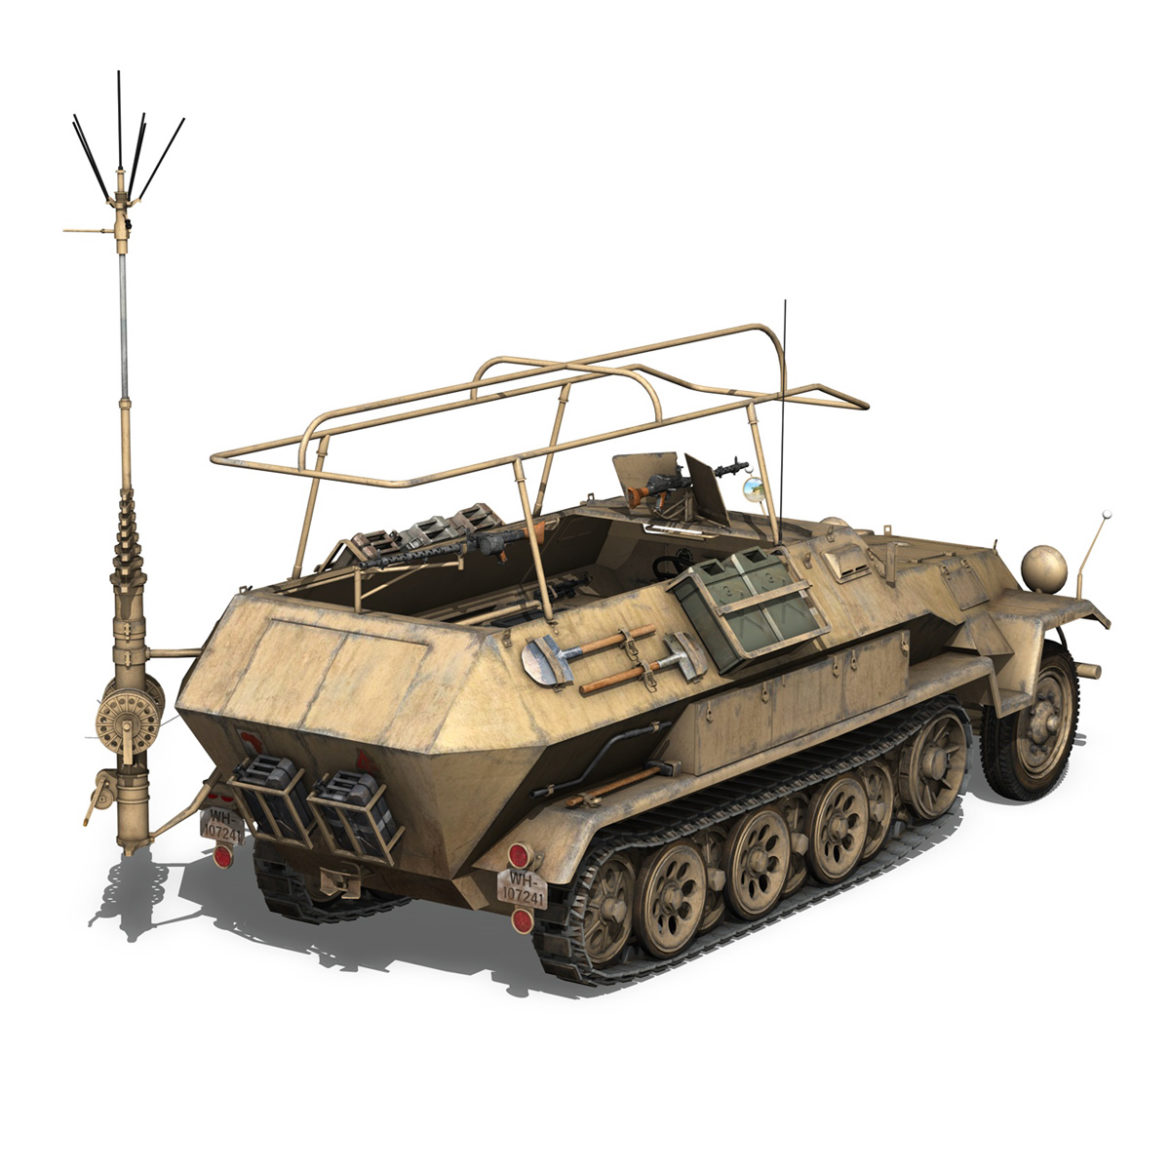 sdkfz 251 ausf.b – communications vehicle – 15pd 3d model 3ds fbx lwo lw lws obj c4d 305991